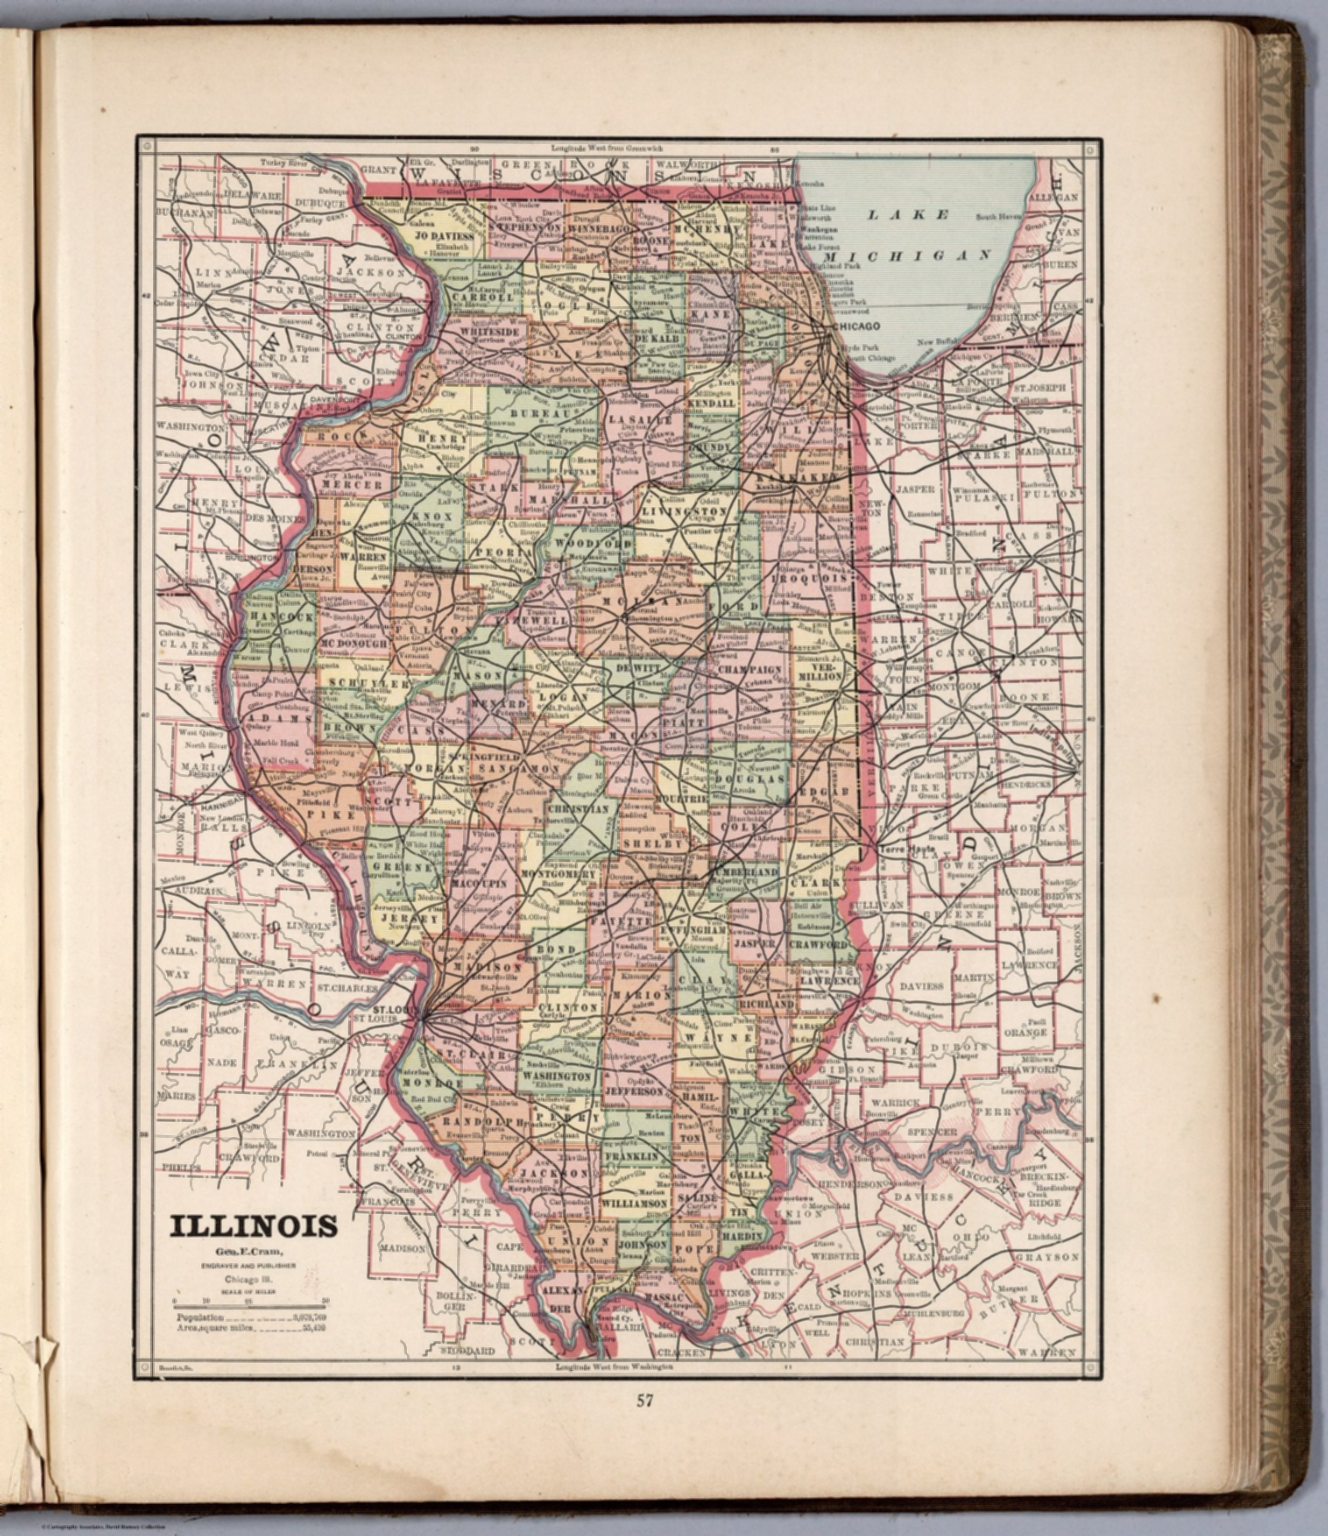 Illinois david rumsey historical map collection illinois gumiabroncs Gallery